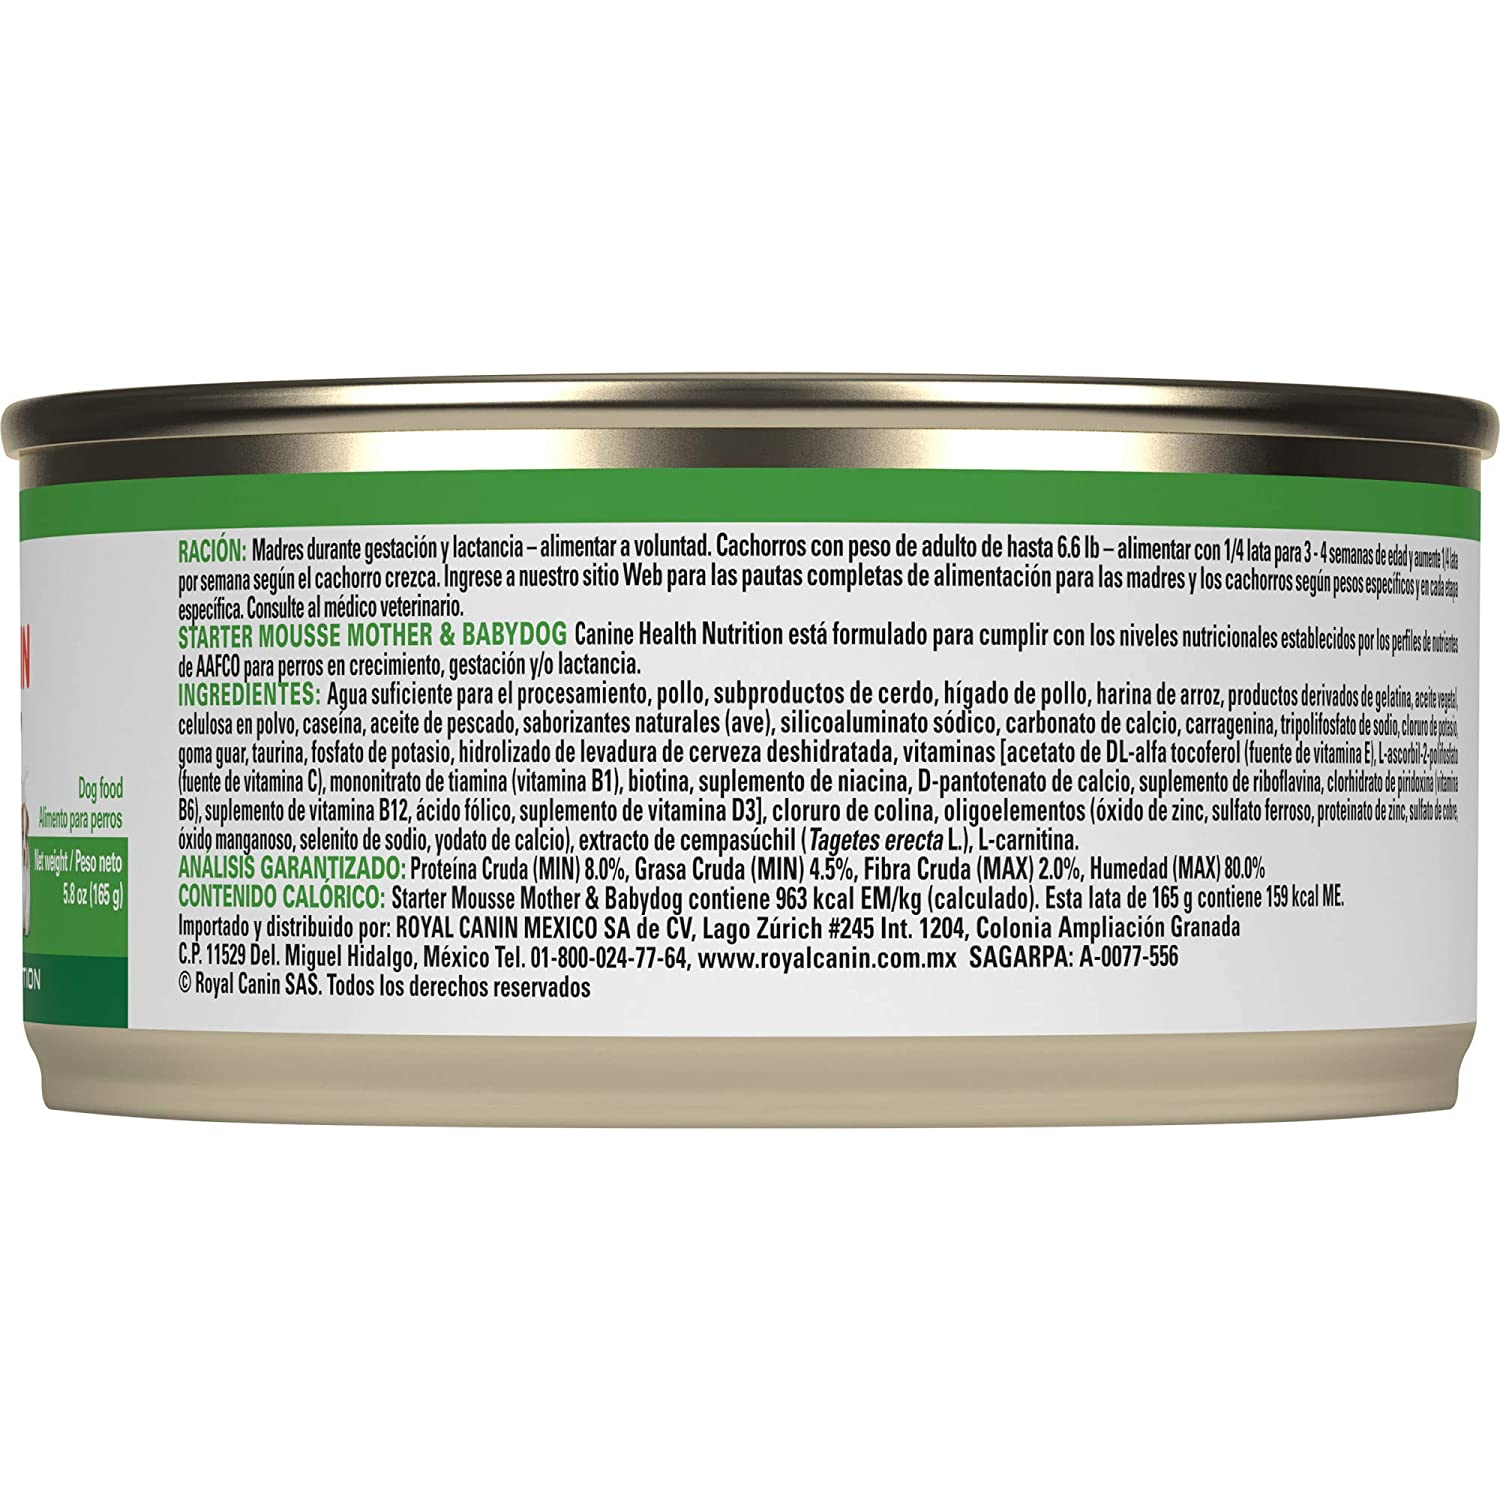 Royal Canin Canine Health Nutrition Starter Mousse Canned Dog Food, 5.8 Oz Cans, Pack of 3: Canned Wet Pet Food: Pet Supplies: Amazon.com